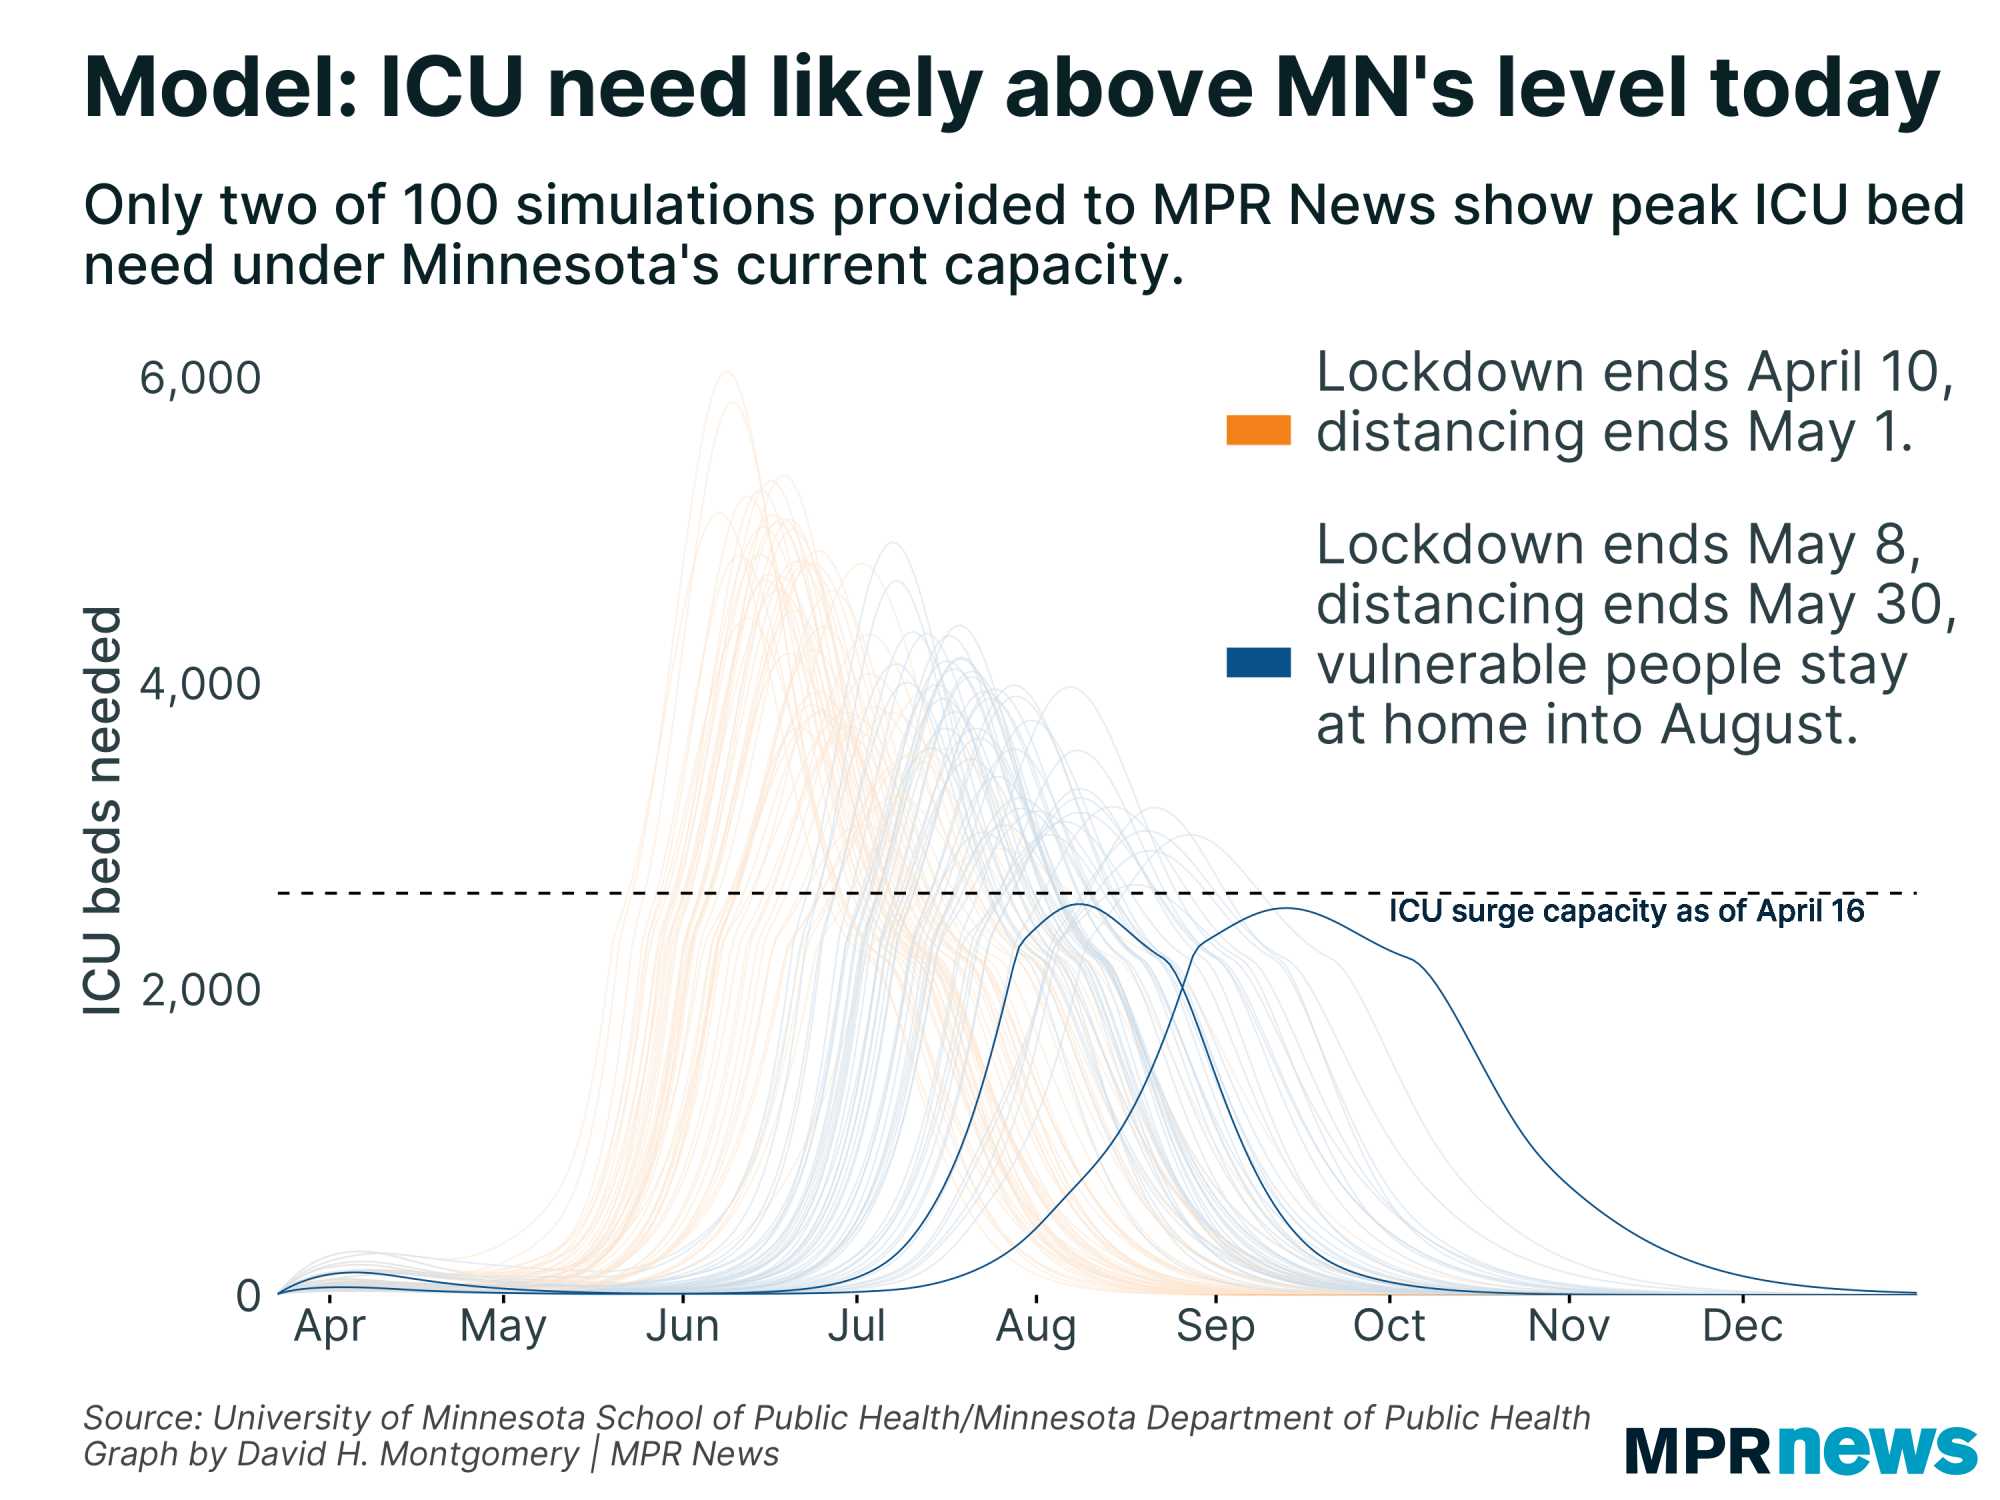 Most simulations show a greater ICU need than Minnesota has now